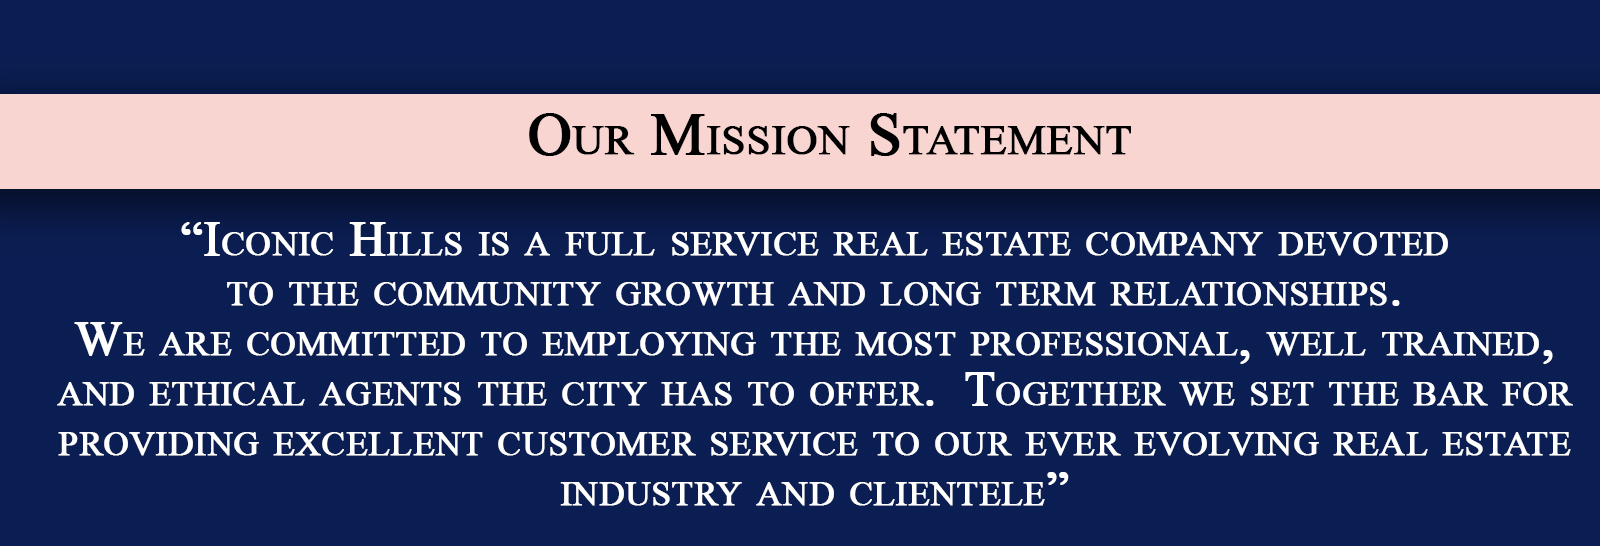 About Us Page Mission Statement Final